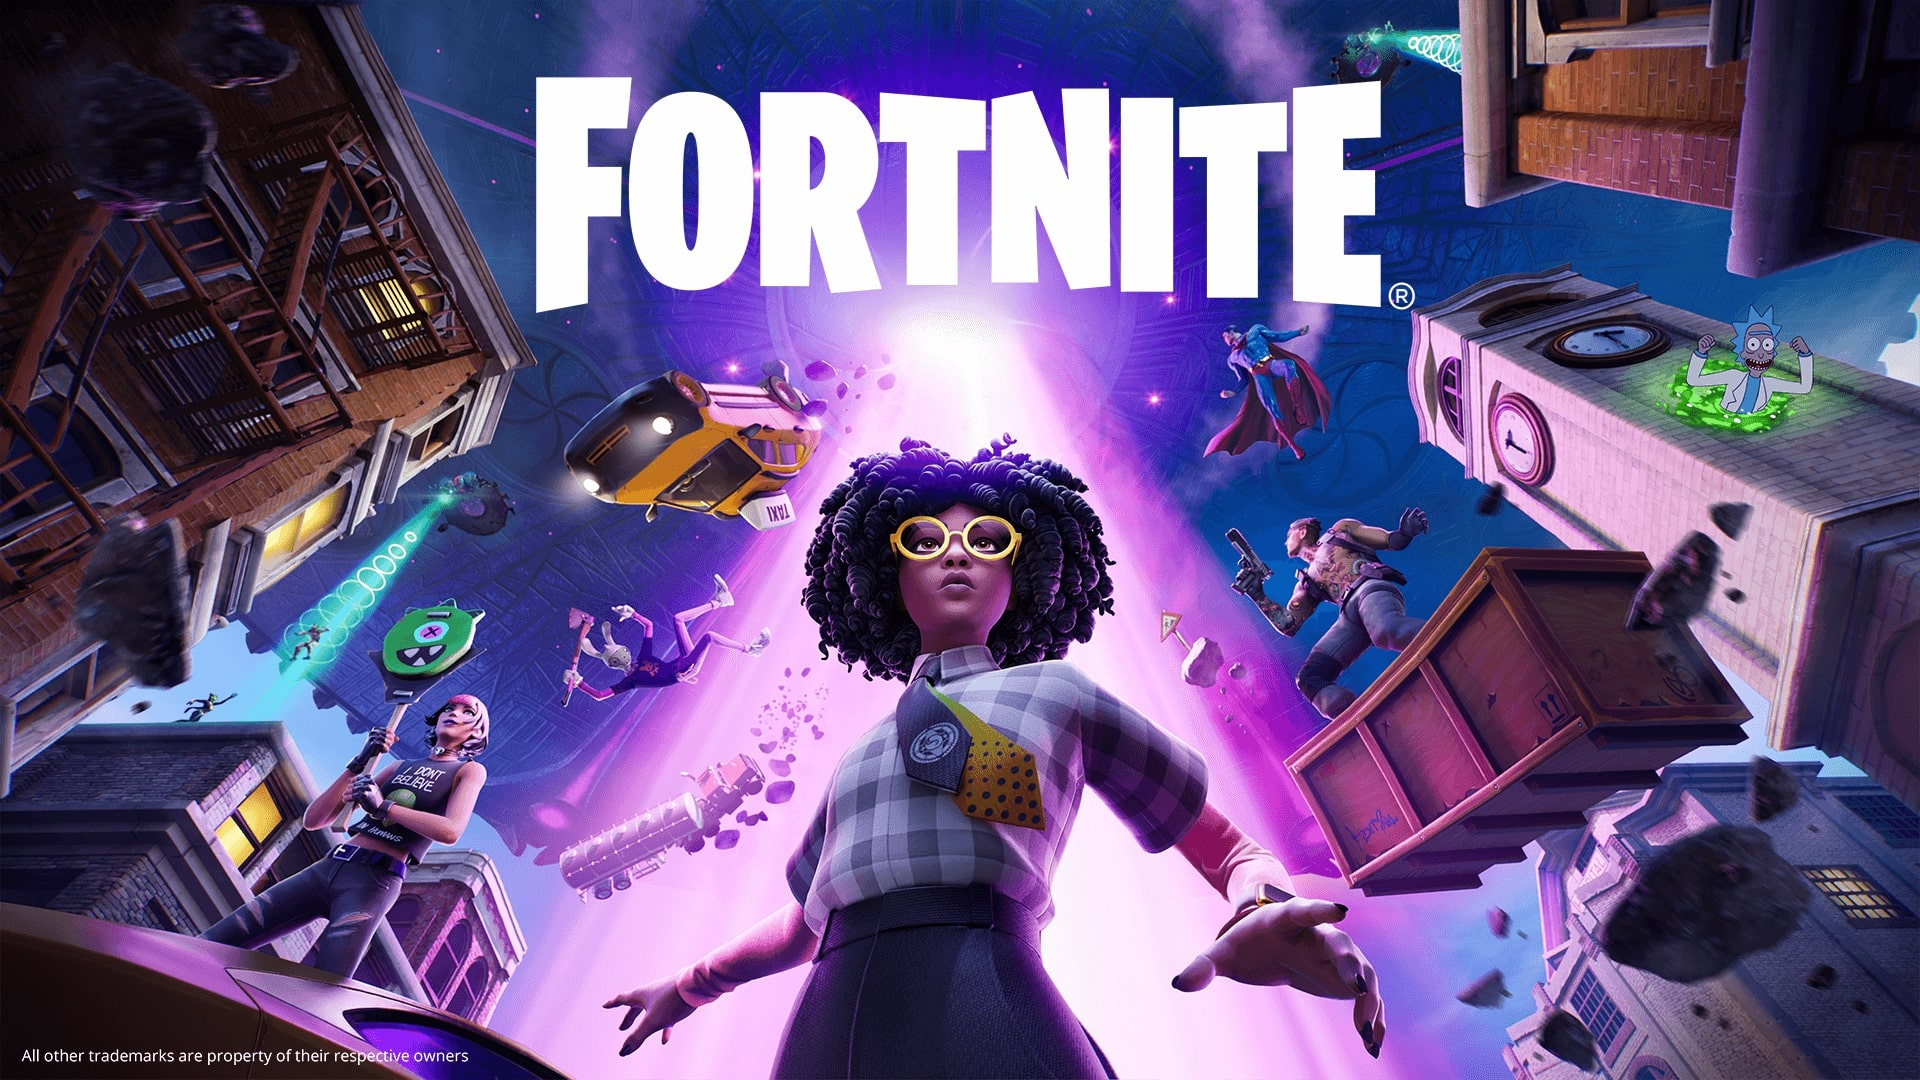 fortnite search for books on explosions